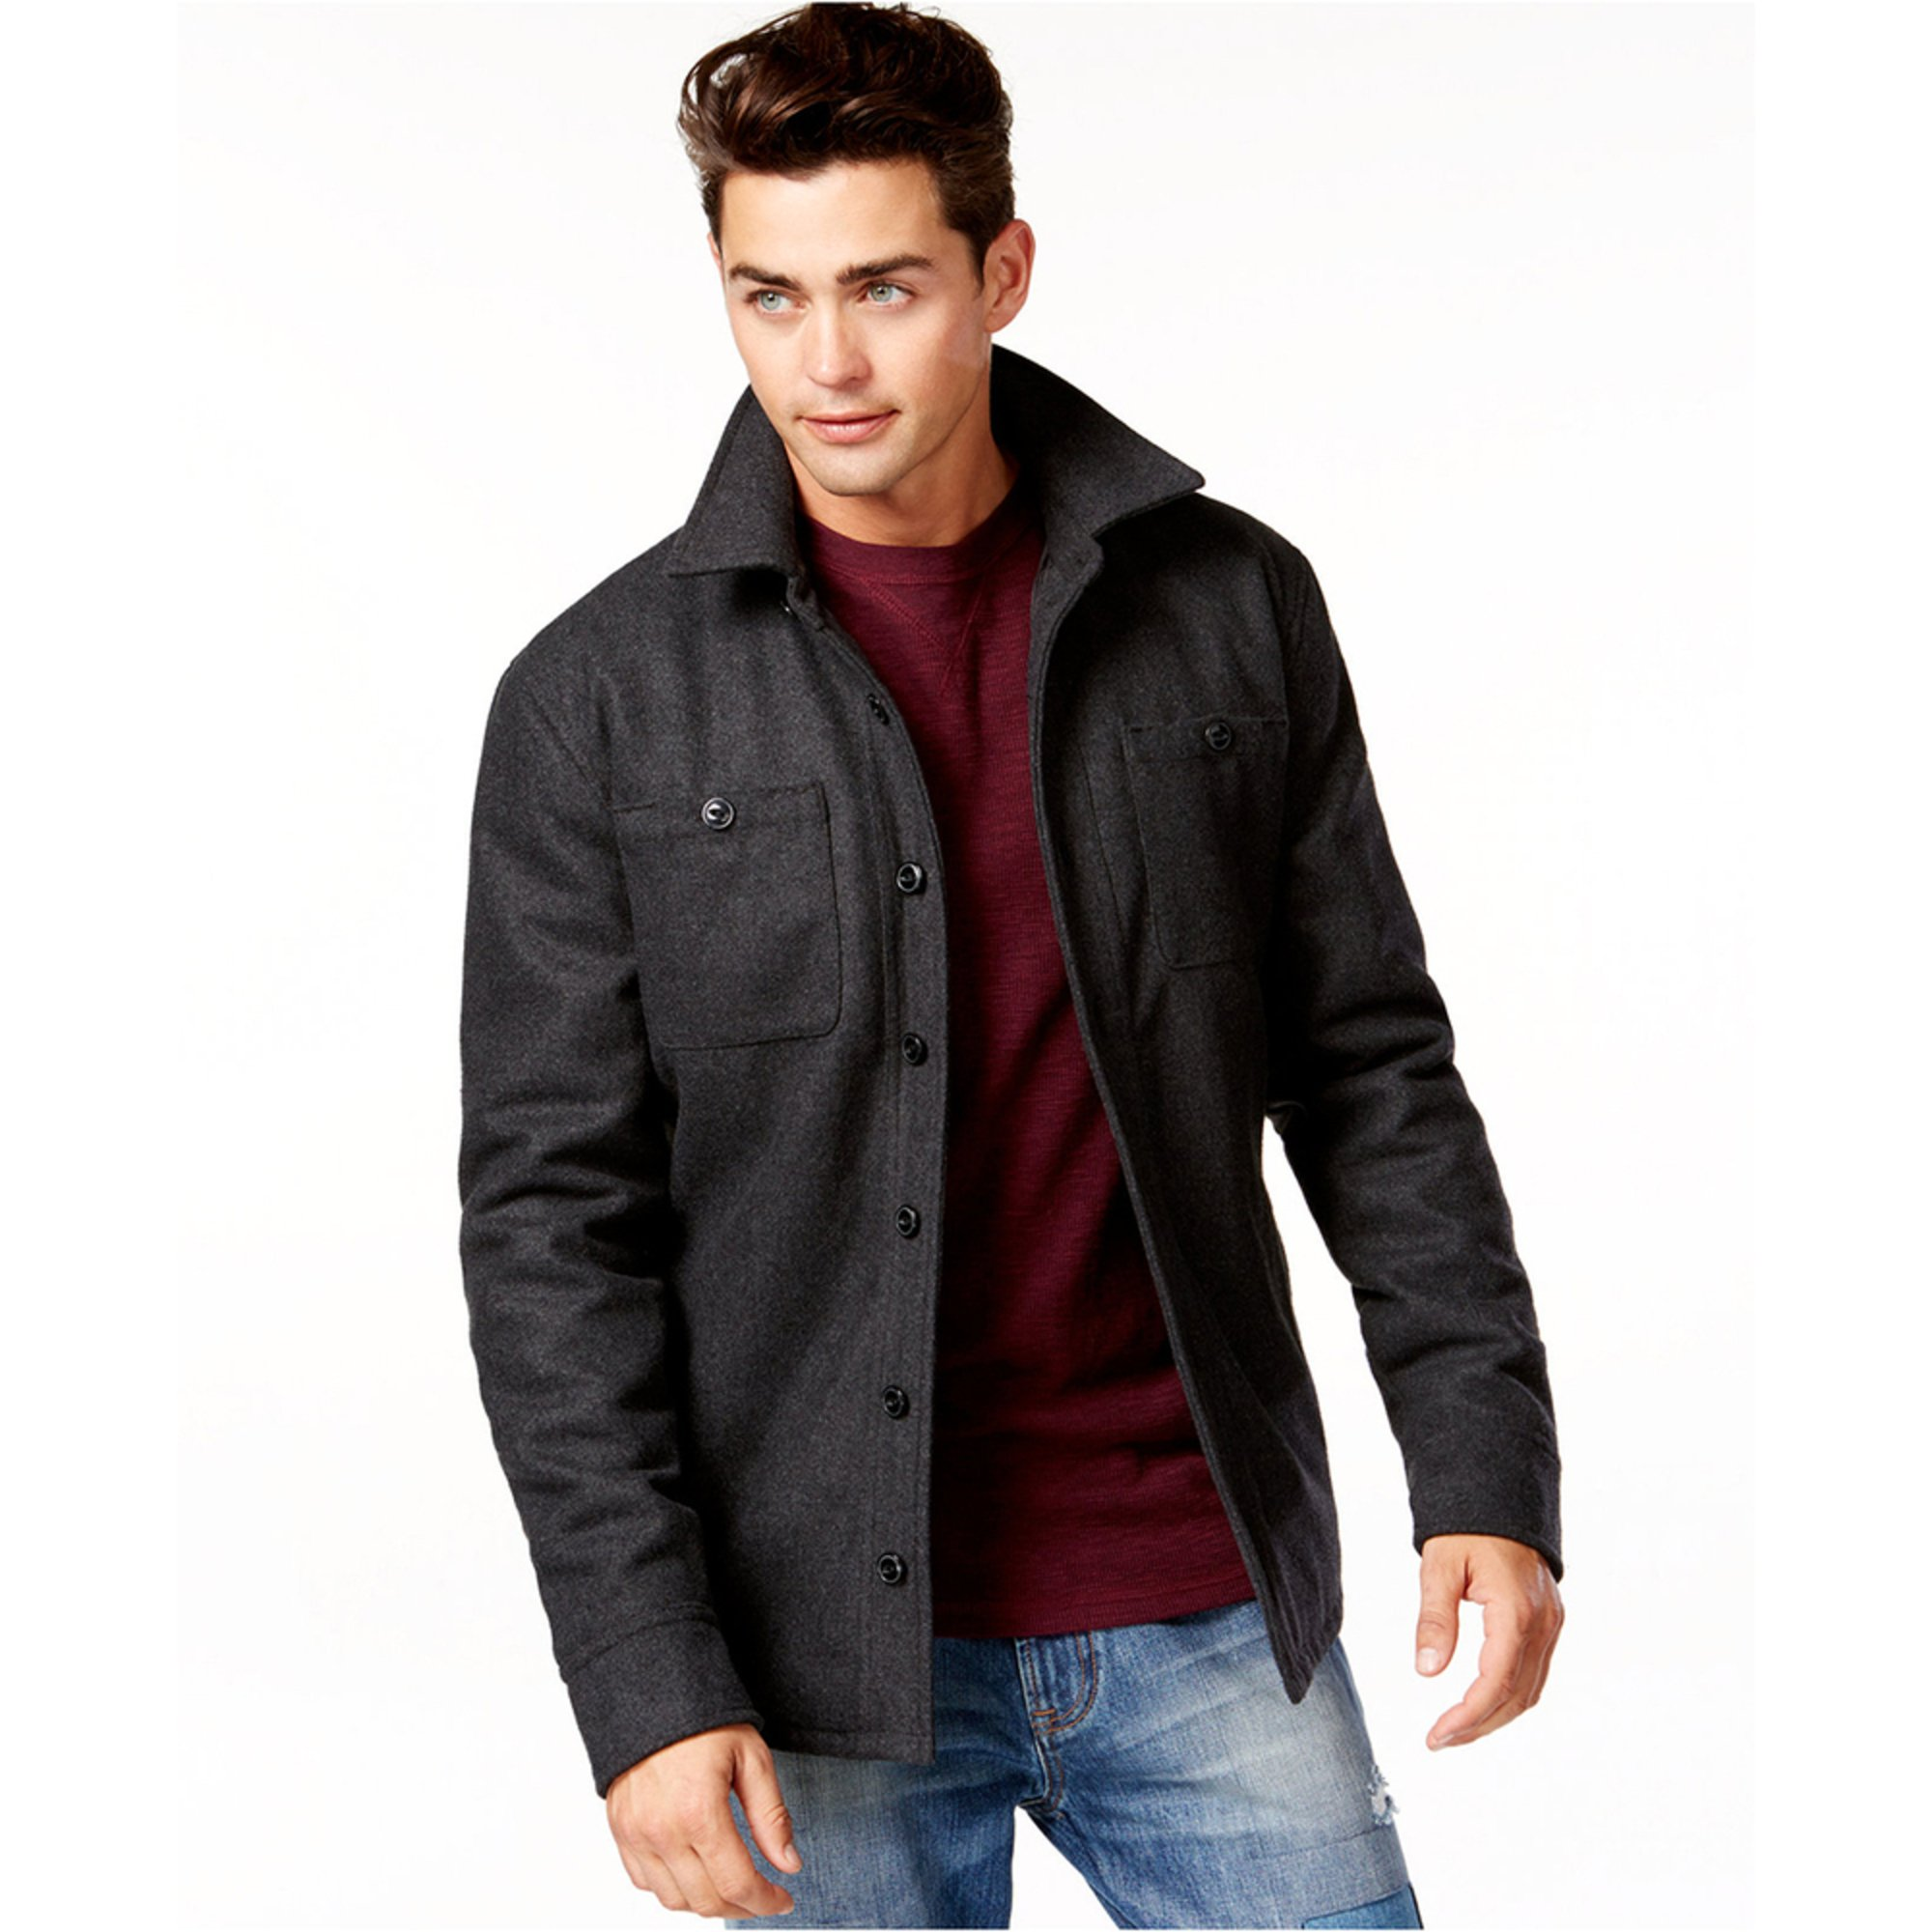 Offers a wide selection of men's clothing including jackets, hoodies, leather jackets, suits, blazers, jeans, hats and shorts. Free shipping worldwide. MENU.